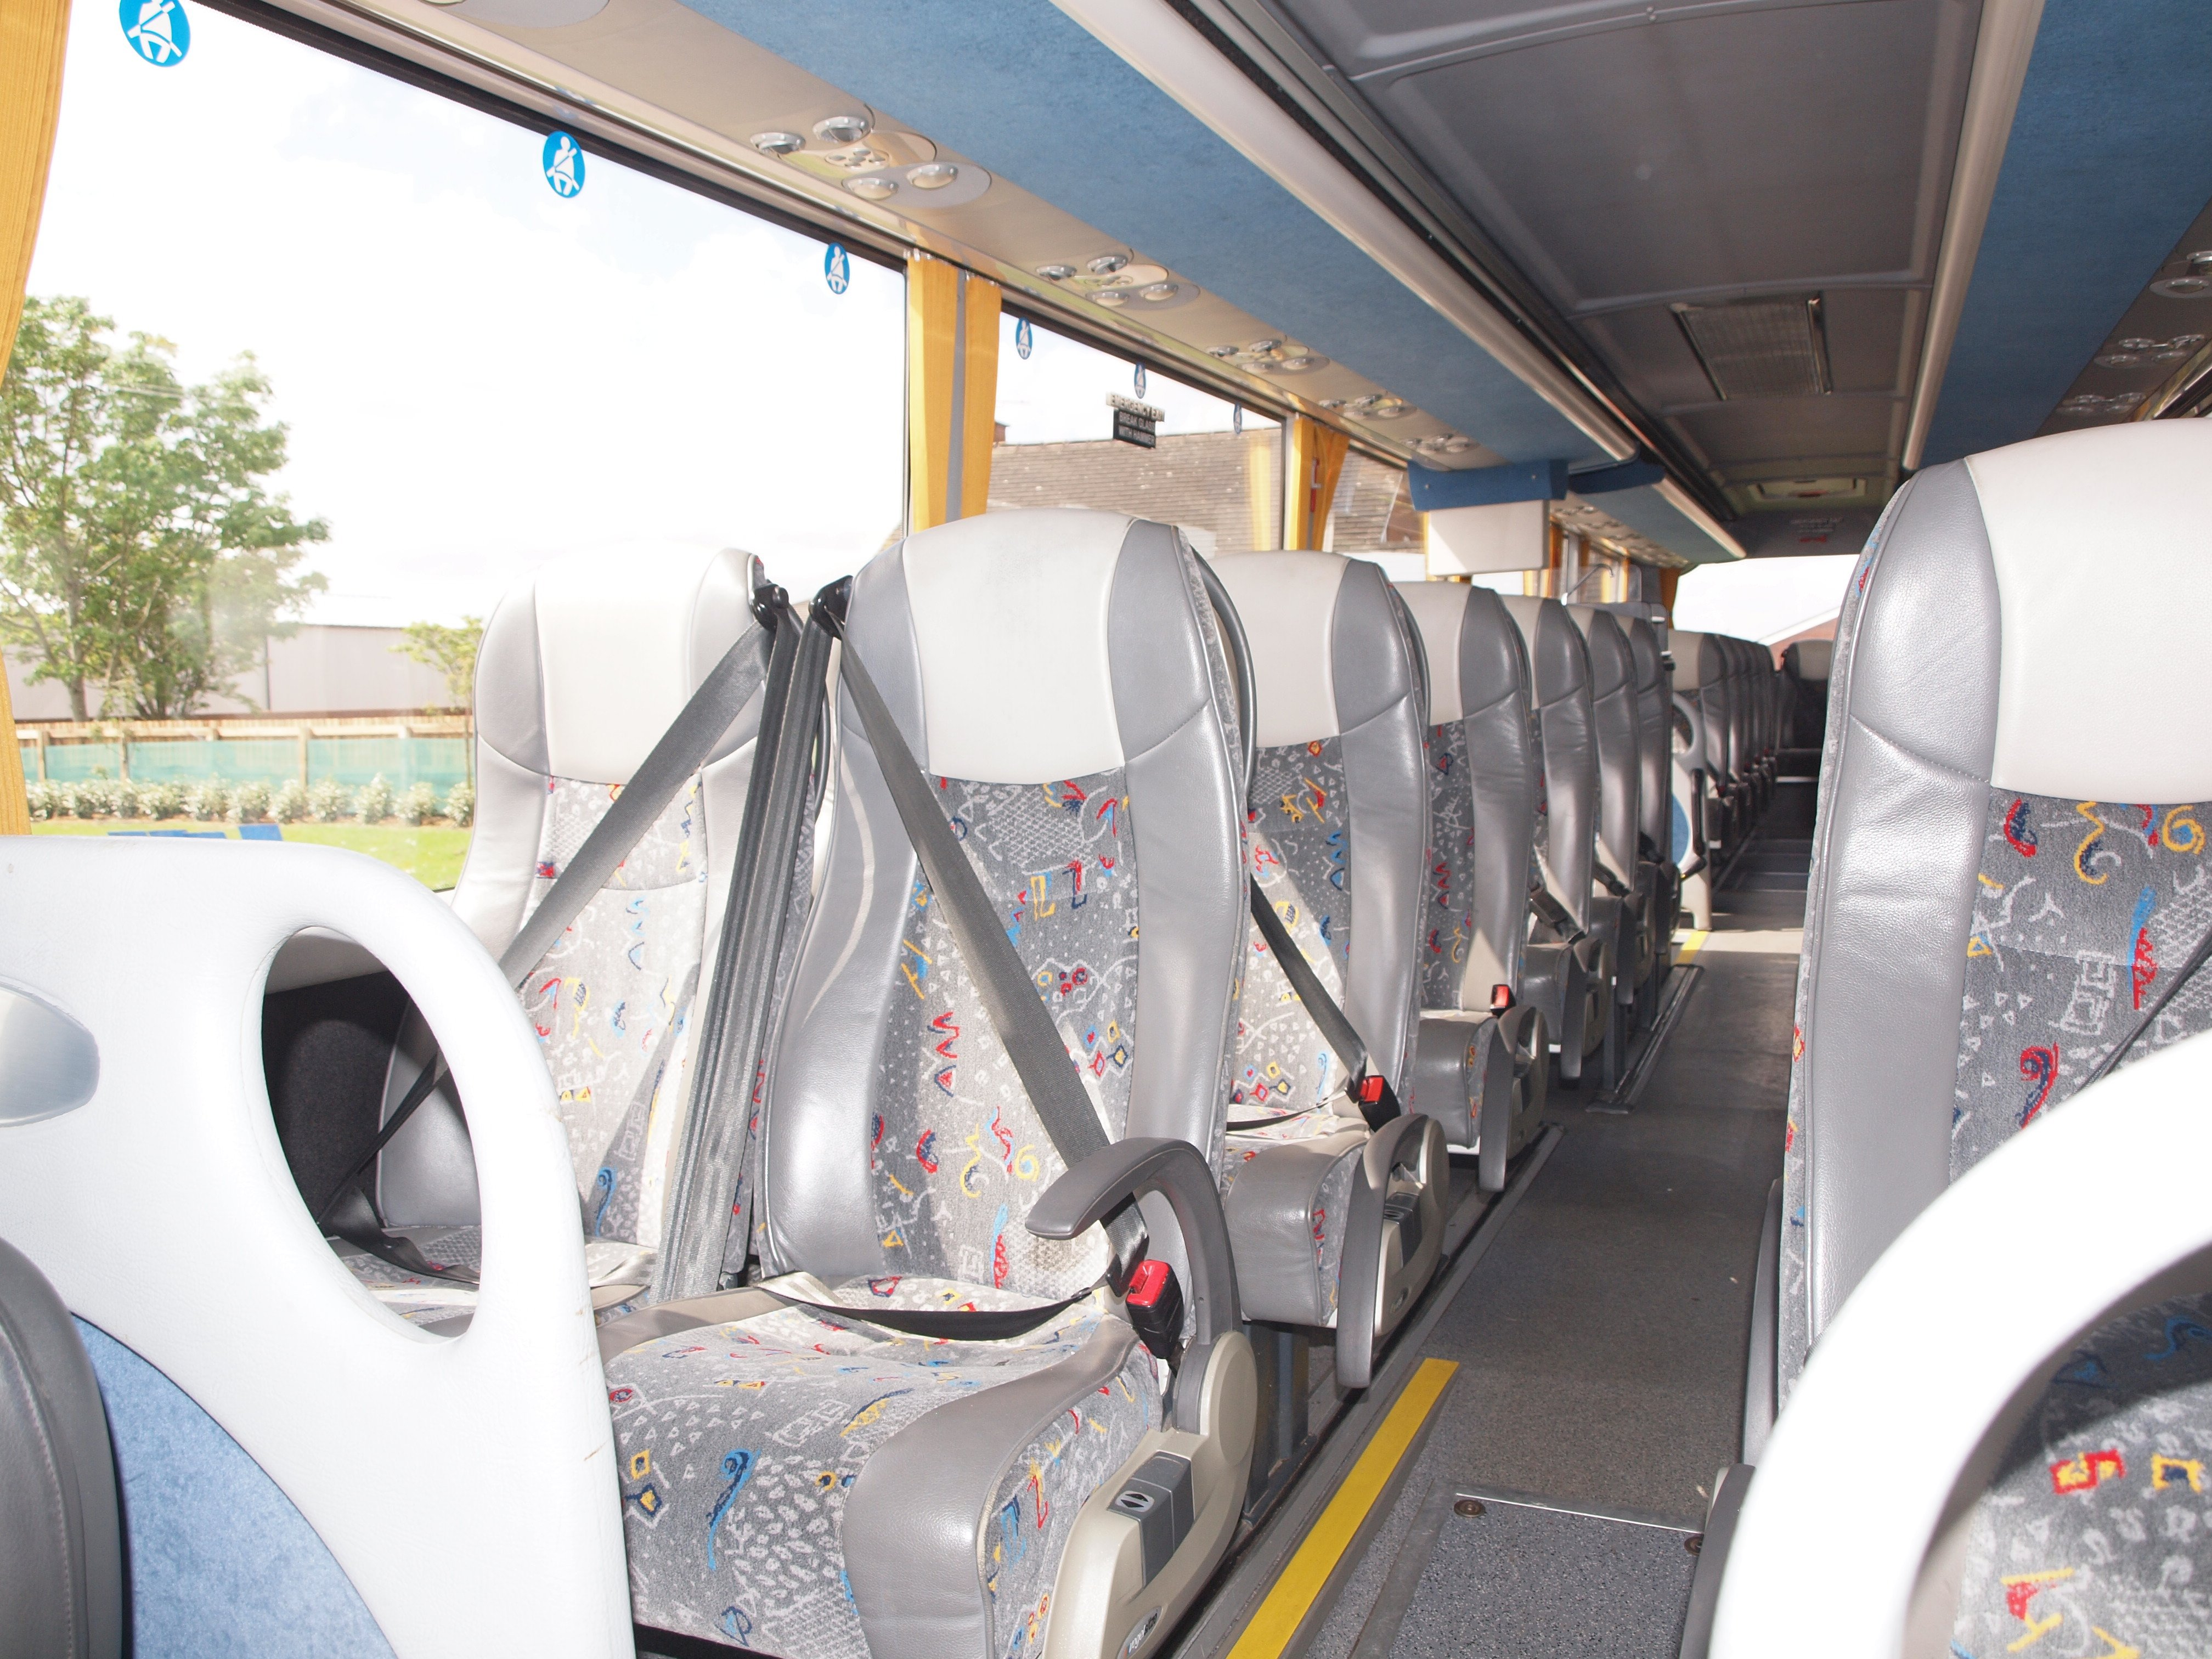 front view of the inside of the coach